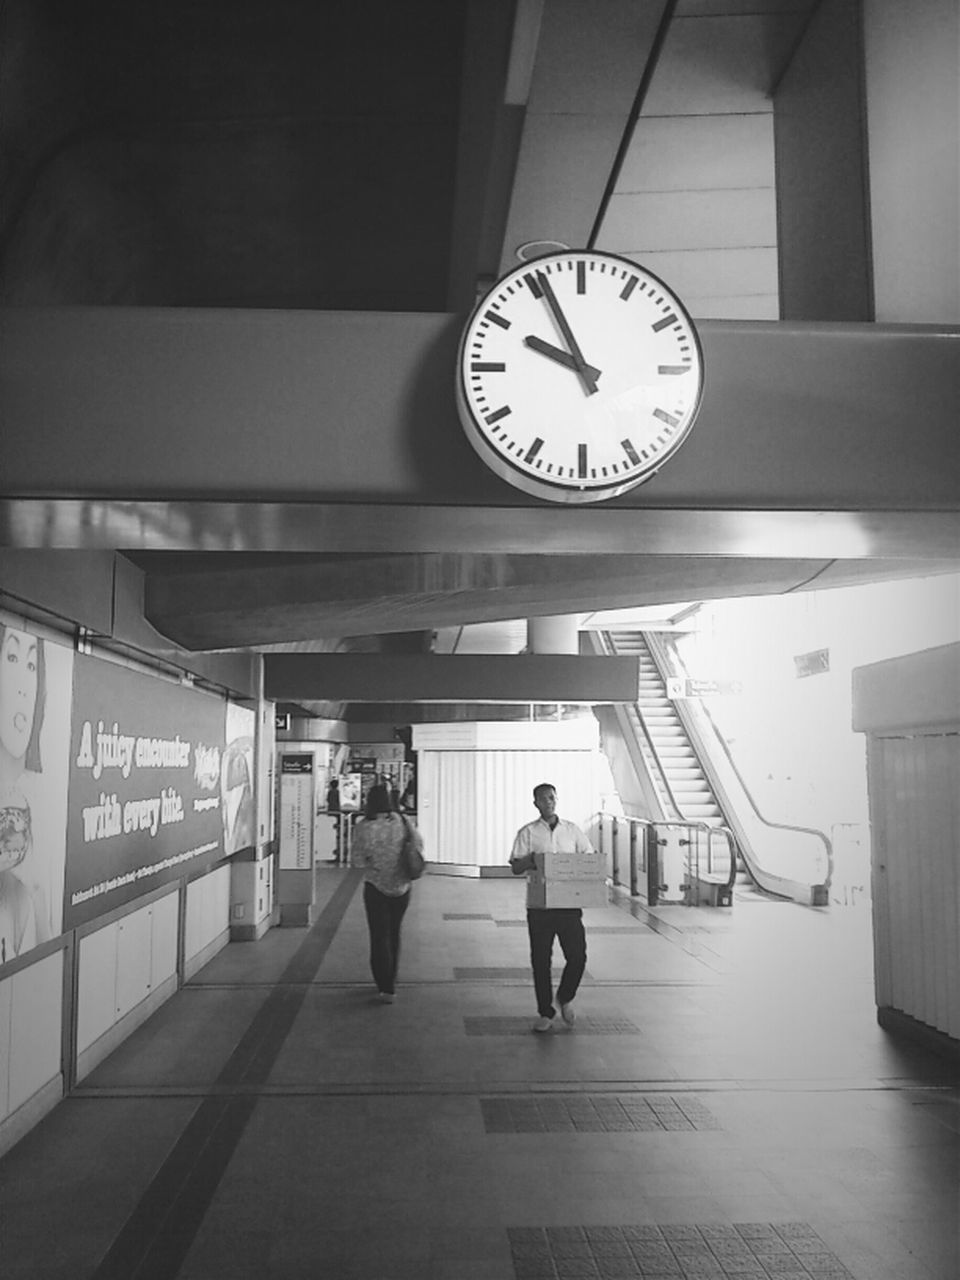 clock, time, indoors, real people, railroad station, medium group of people, men, public transportation, women, clock face, illuminated, full length, standing, minute hand, day, people